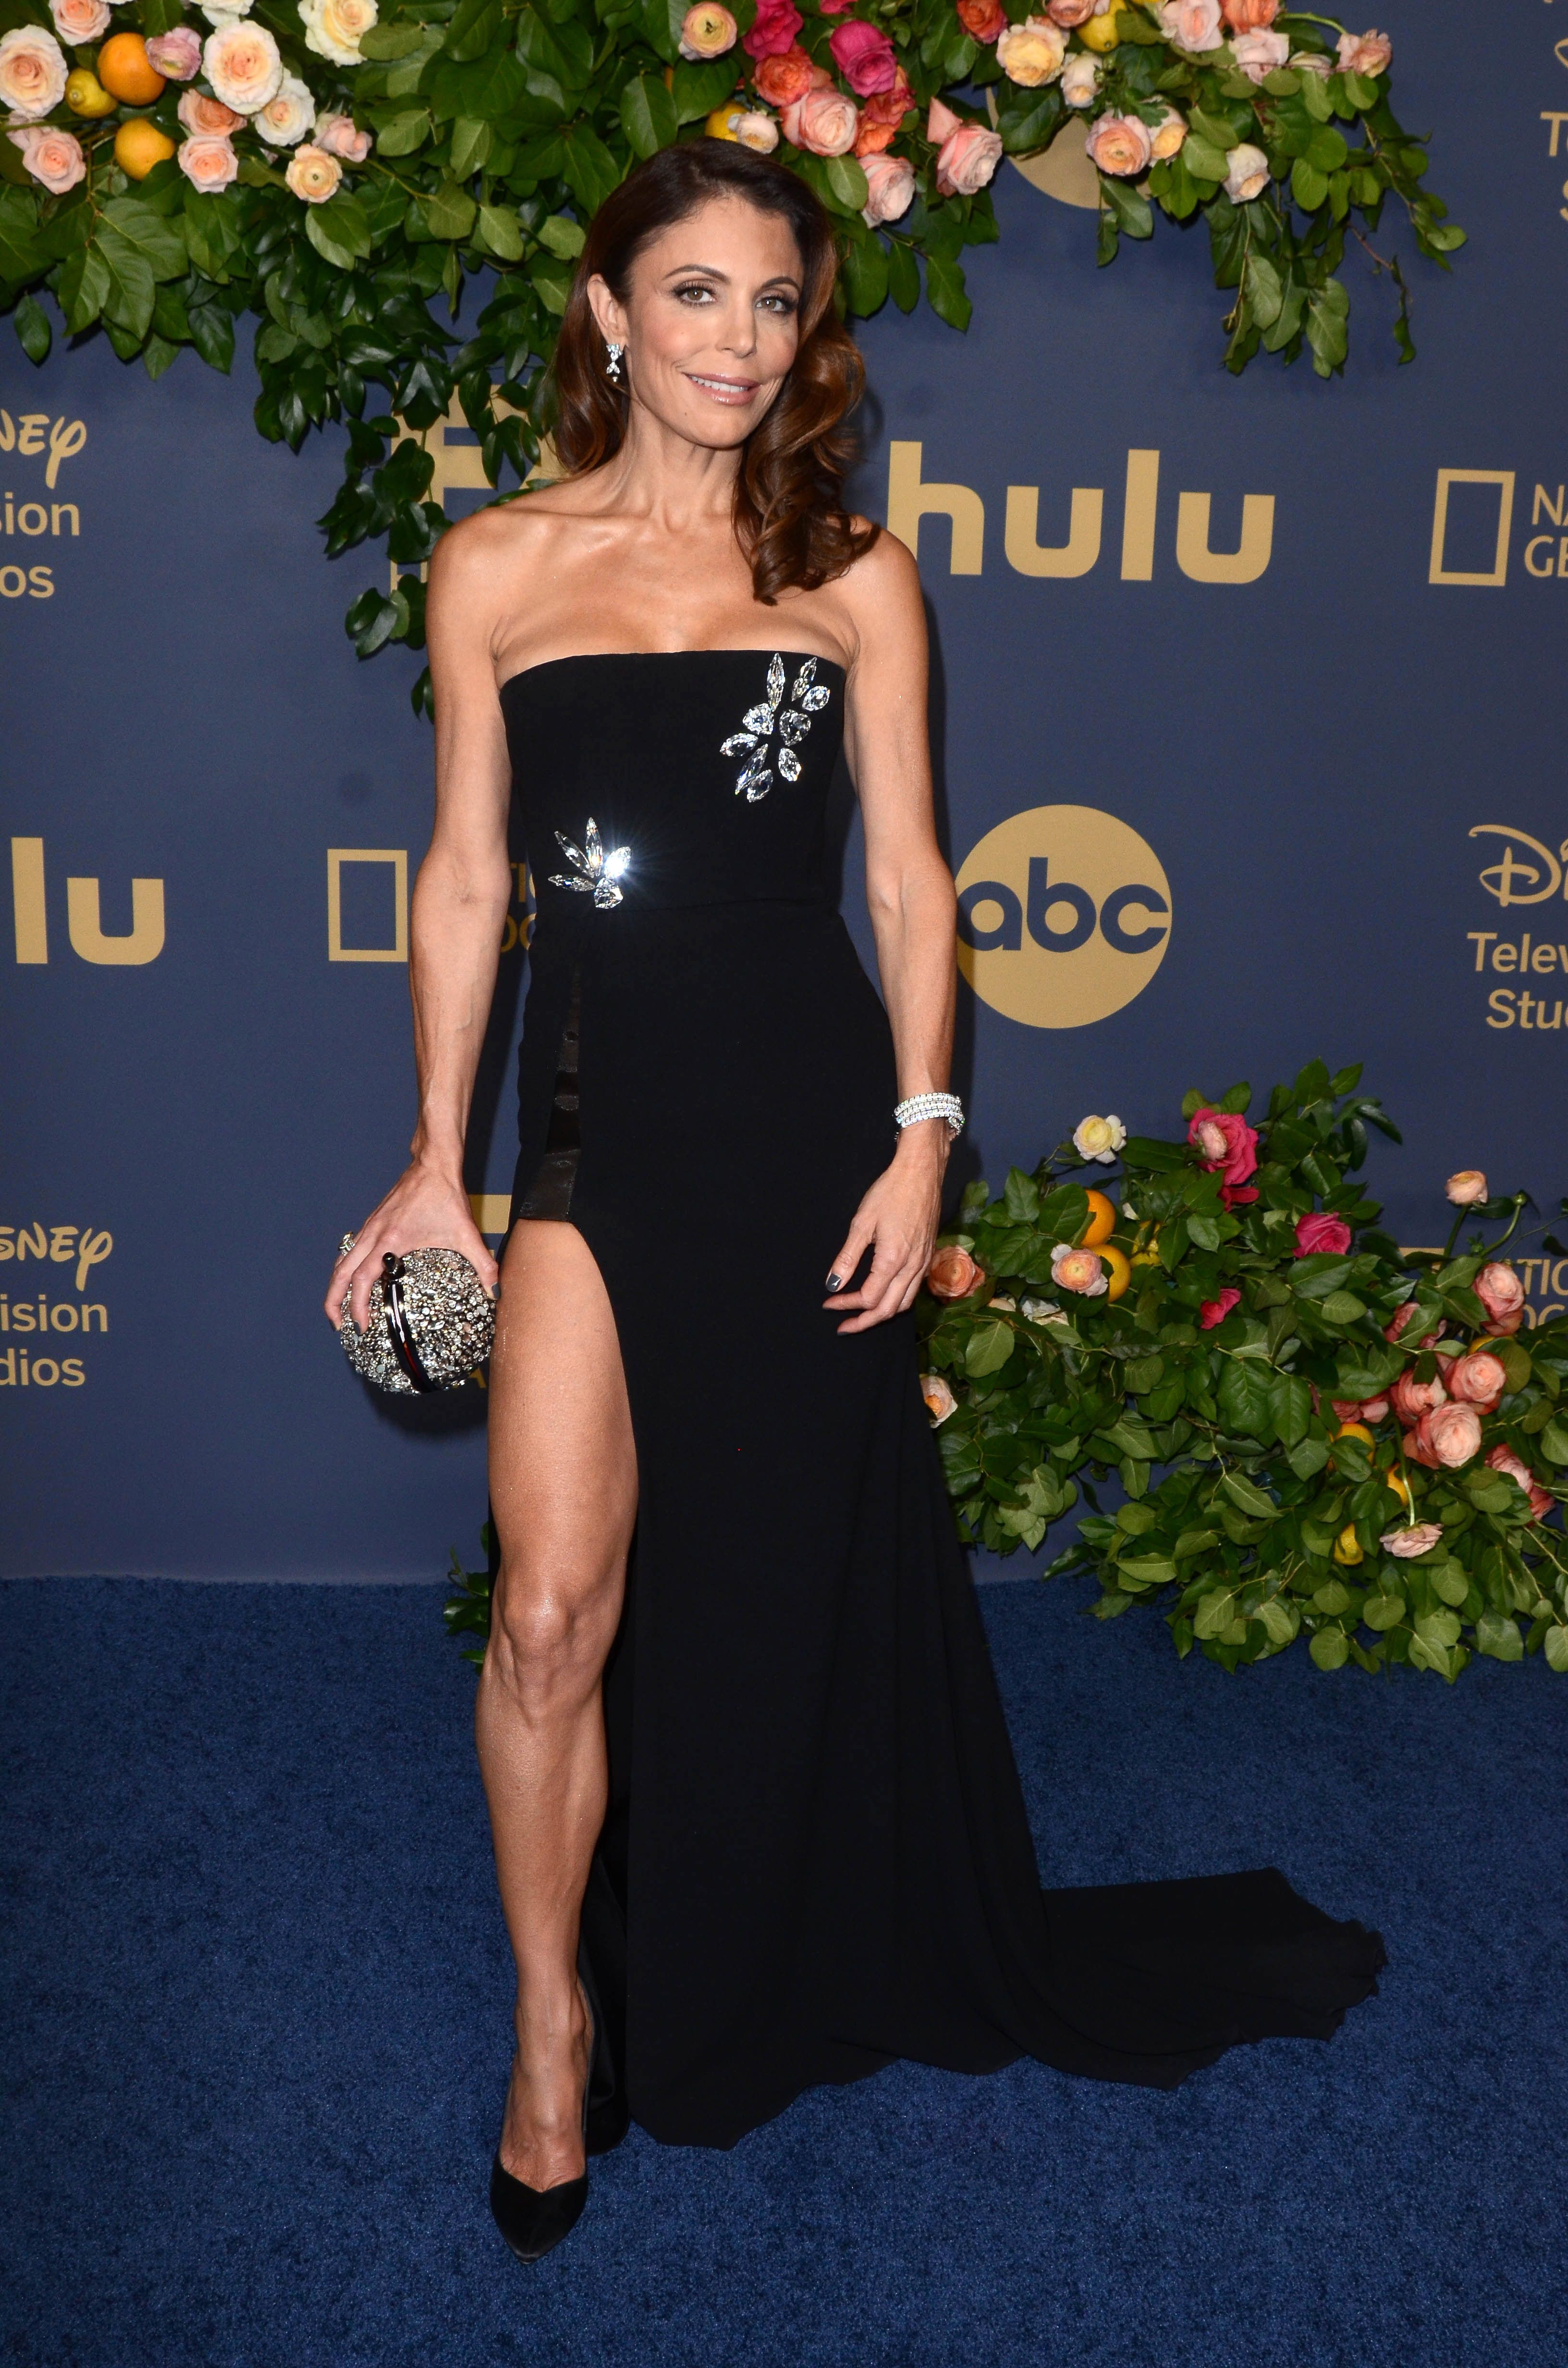 Bethenny Frankel wears a strapless gown and curled hair.